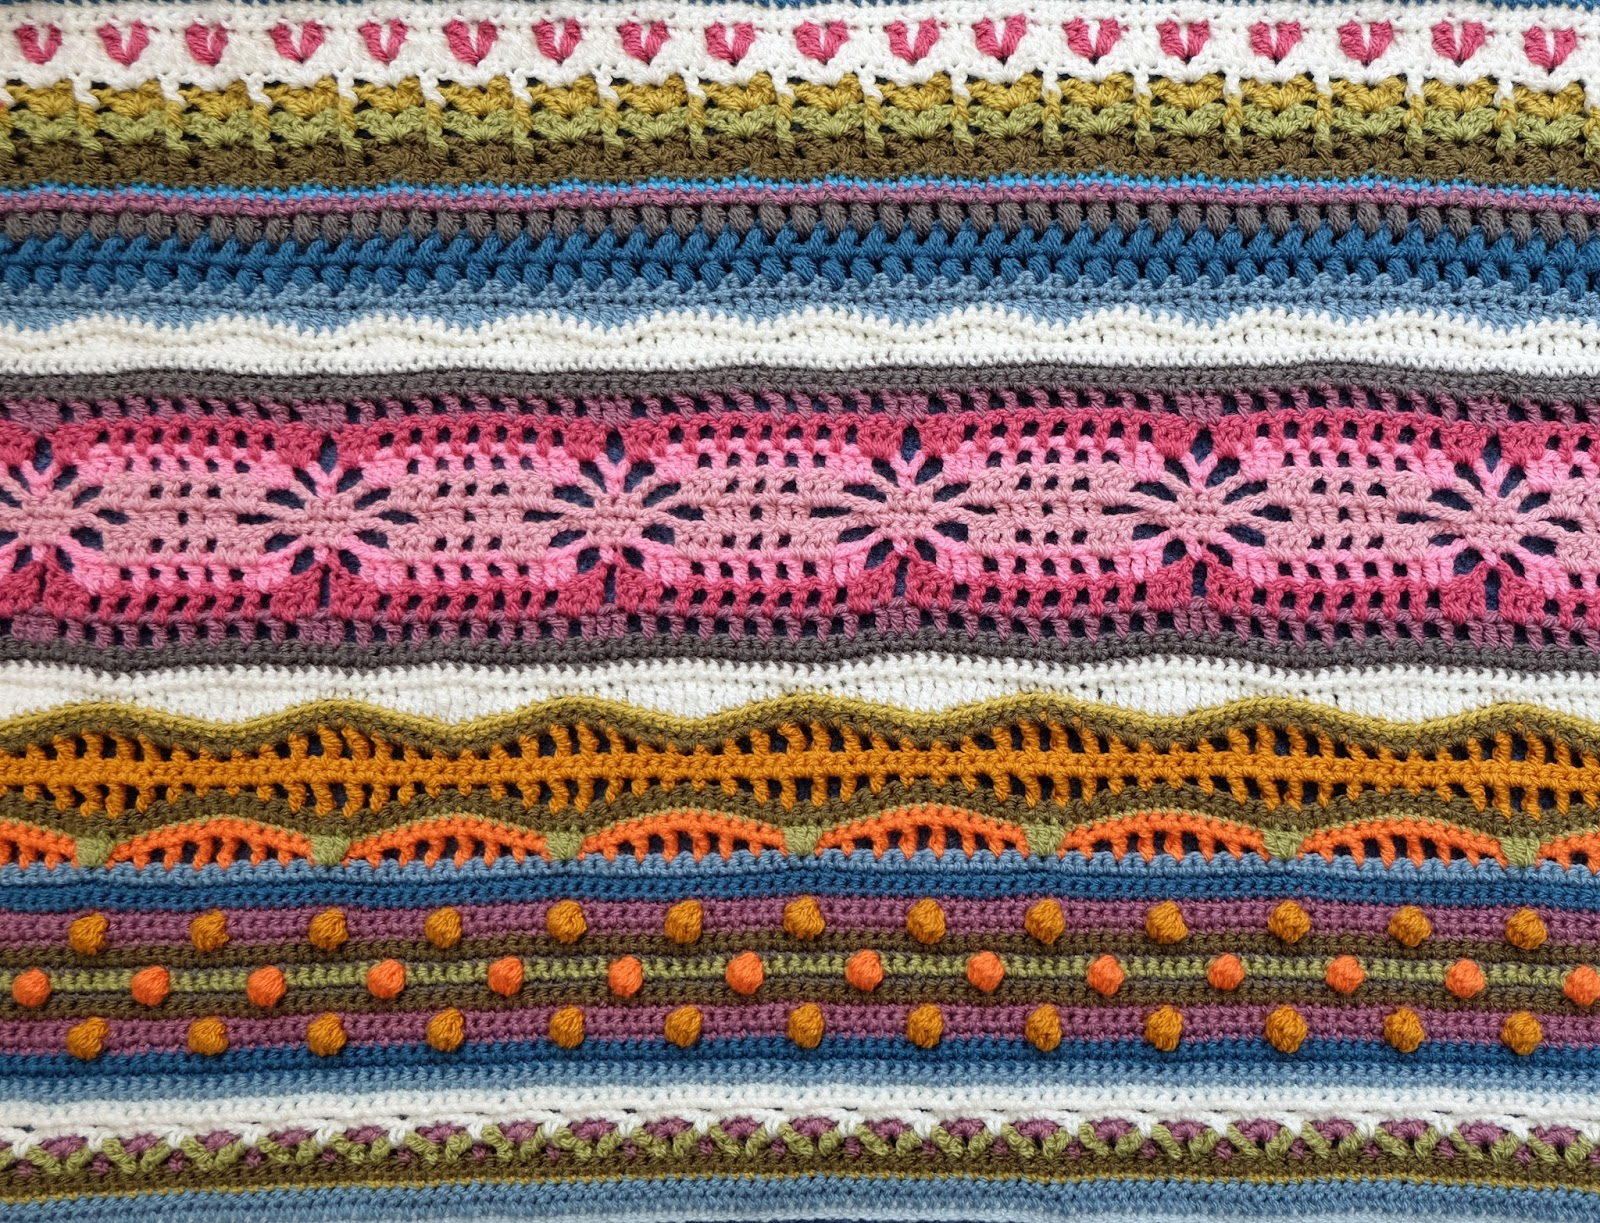 Knit crochet design the patterns for next month will feature little crochet heart shapes to honour valentines day there is an image posted below the patterns will be live bankloansurffo Choice Image